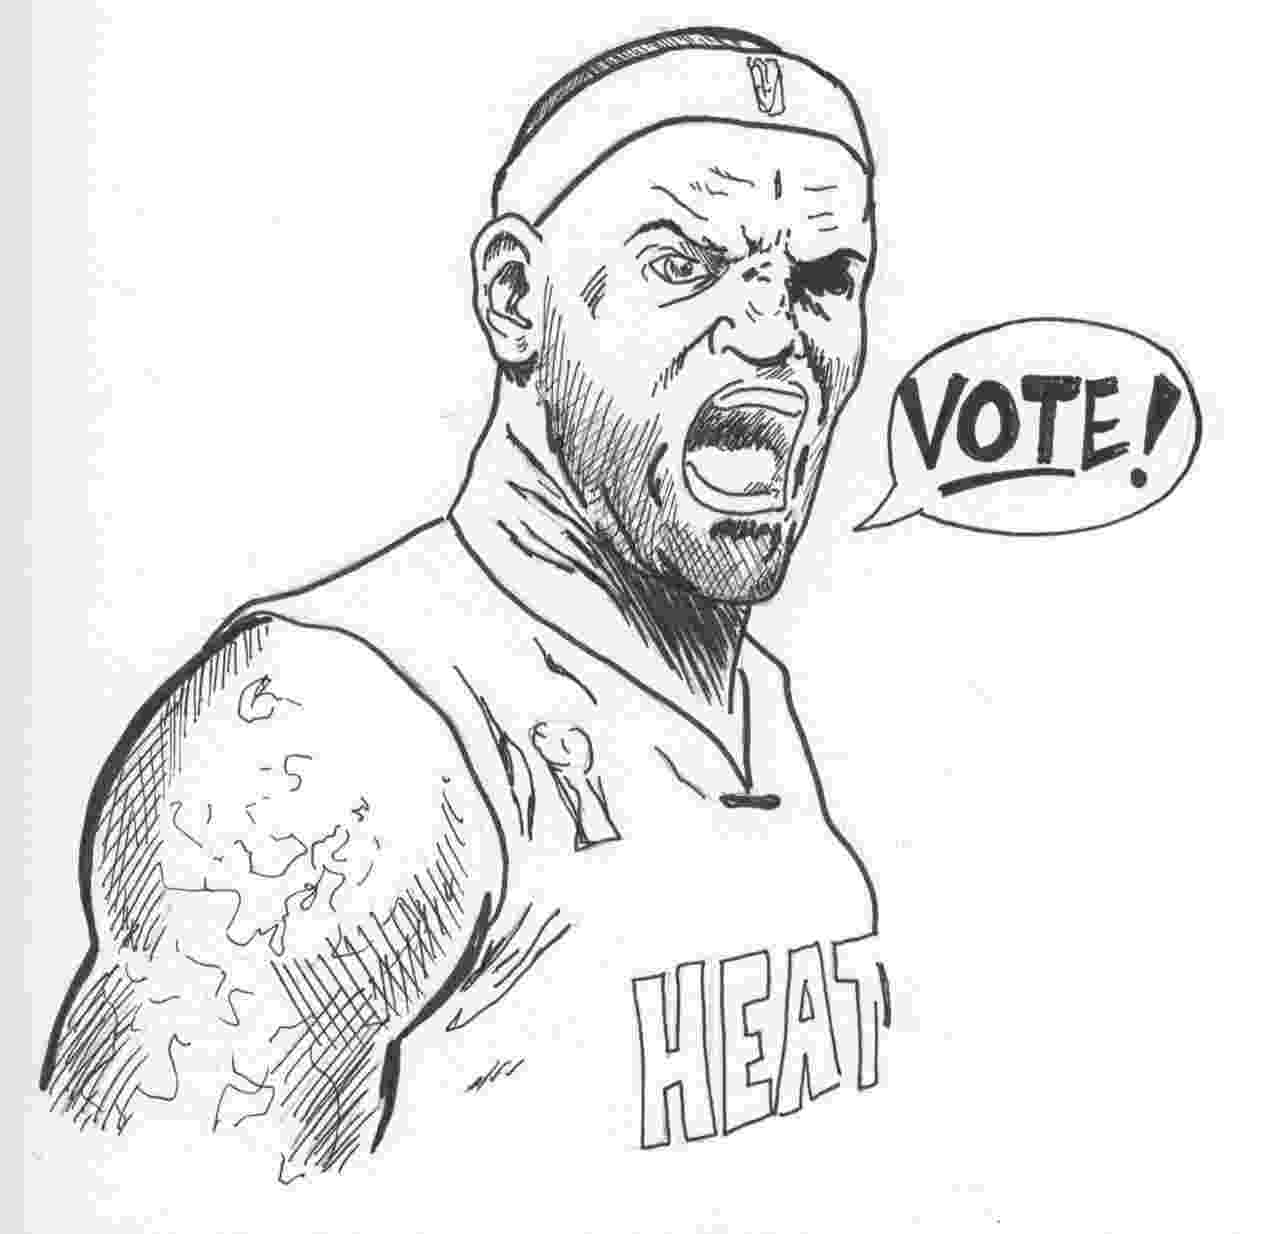 lebron coloring pages lebron james coloring pages to download and print for free lebron pages coloring 1 1